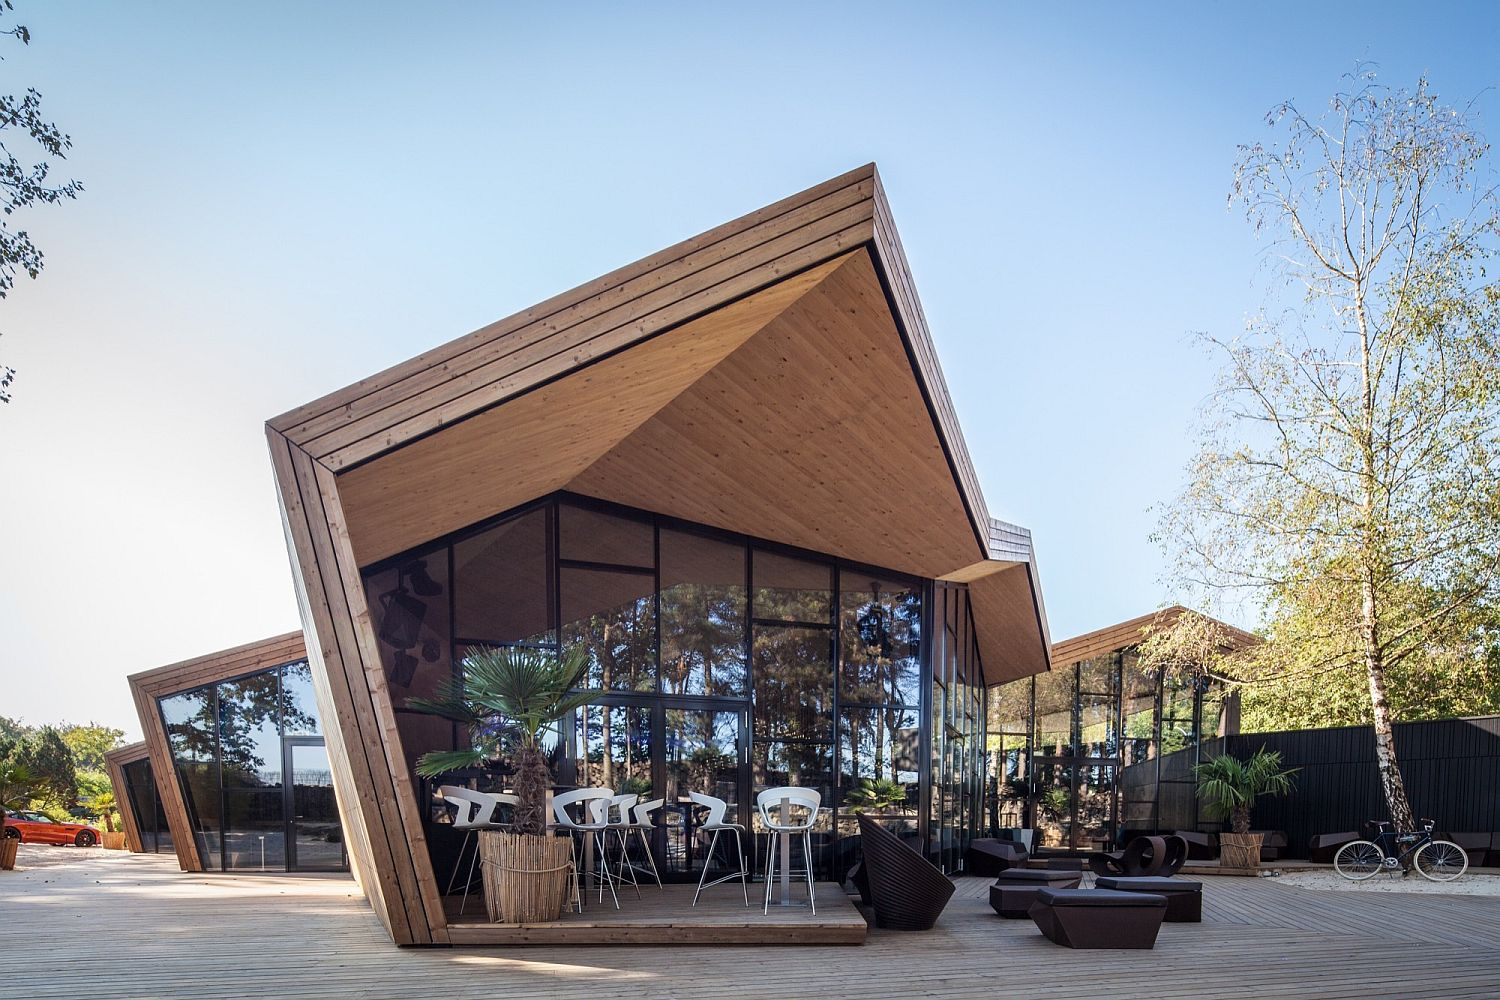 Creative Boos Beach Club Restaurant in Luxembourg Inspired by the Art of Origami: Creative Beach Club Restaurant in Luxembourg